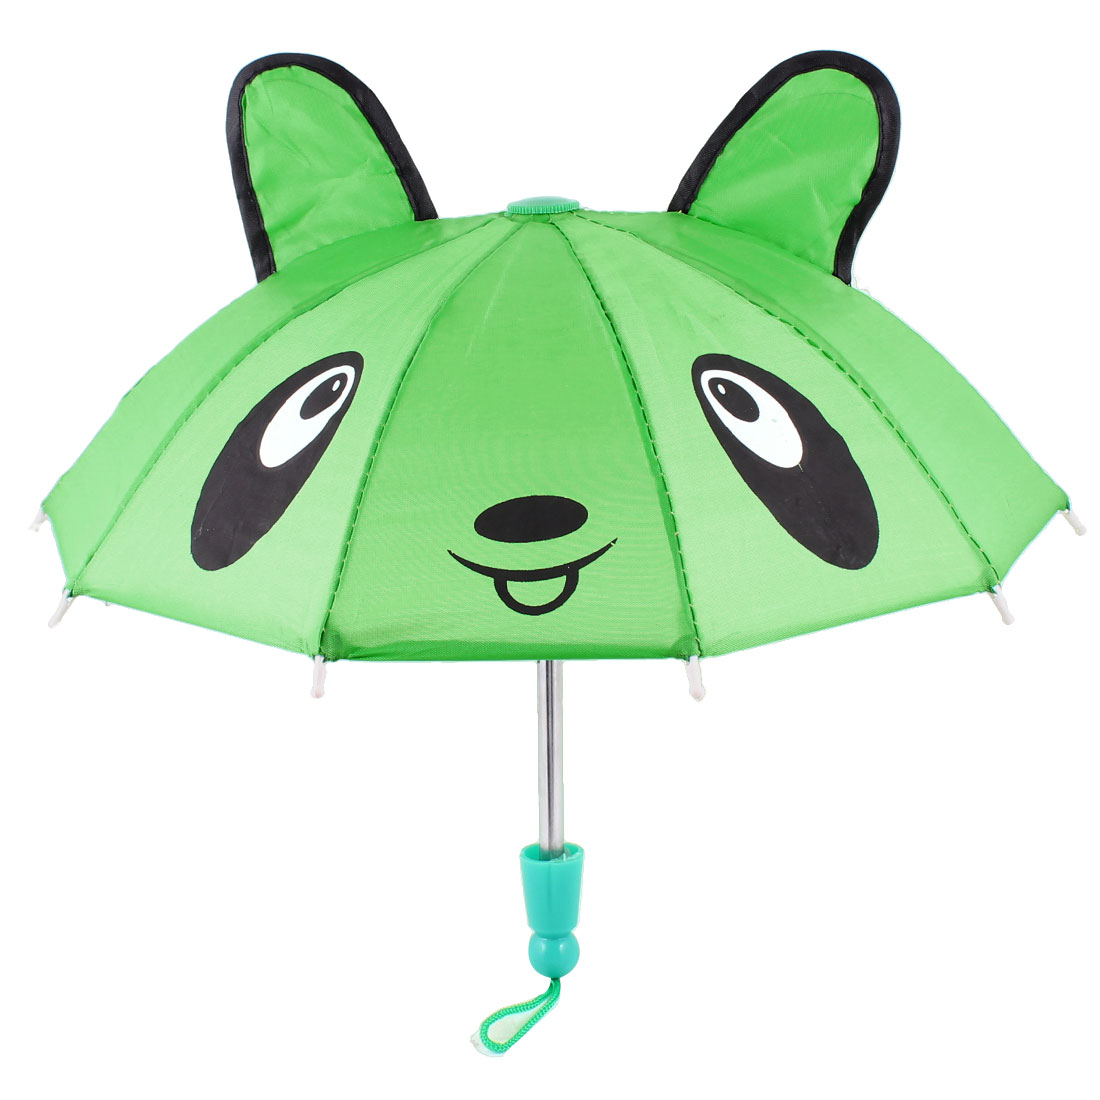 Bear Head Printed Green Mini Animal Umbrella Toy for Children